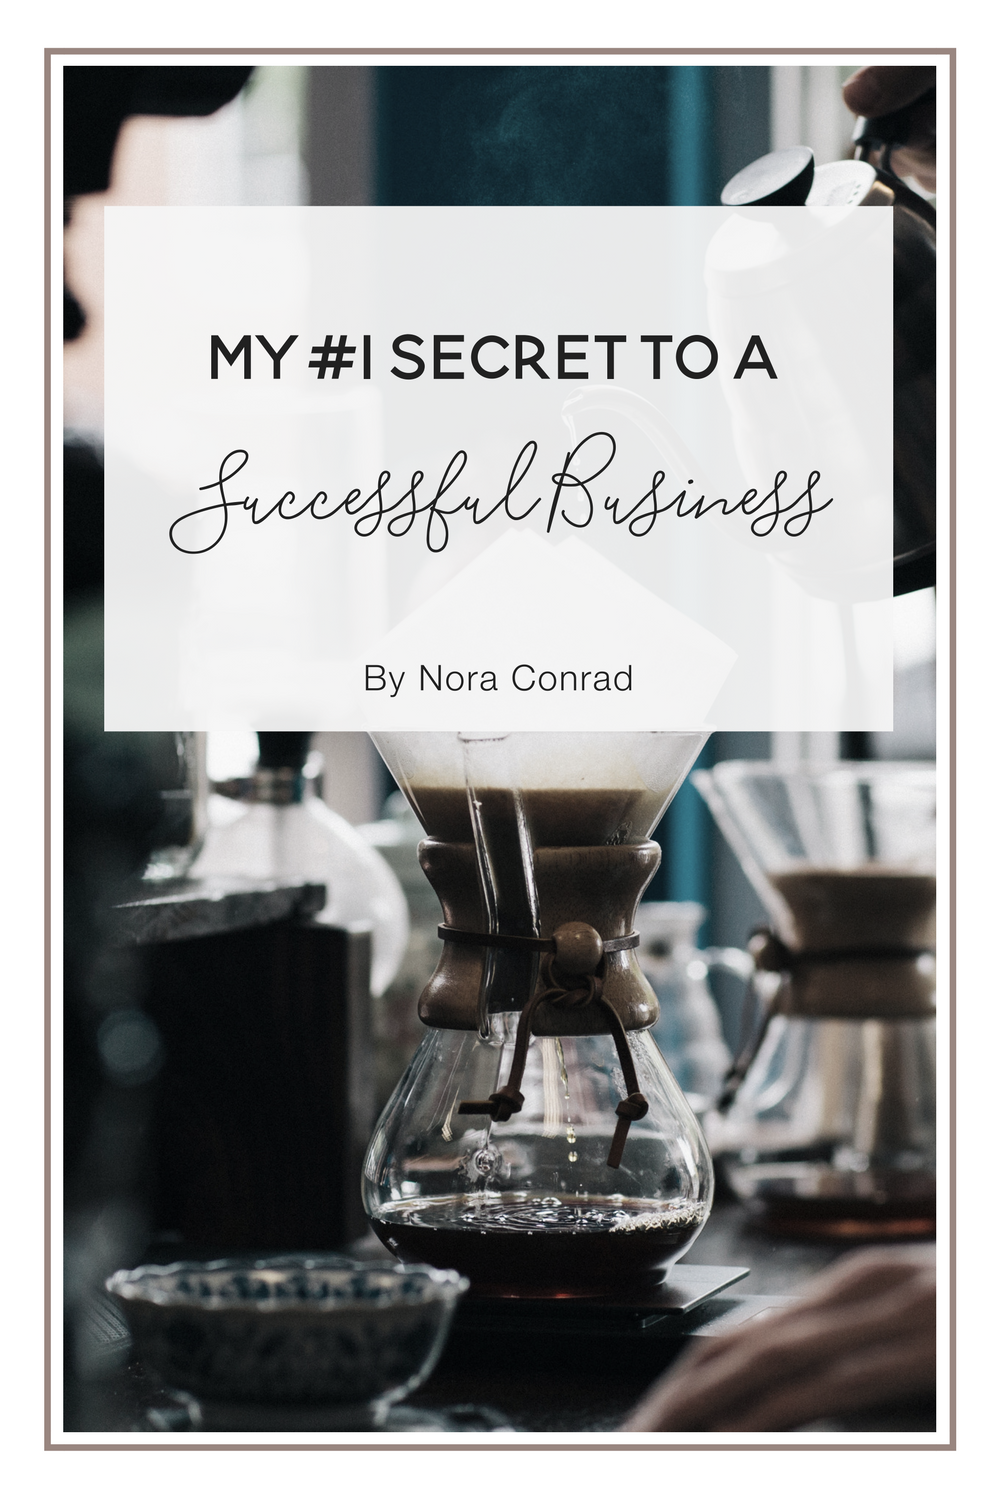 My #1 Secret to a Successful Business